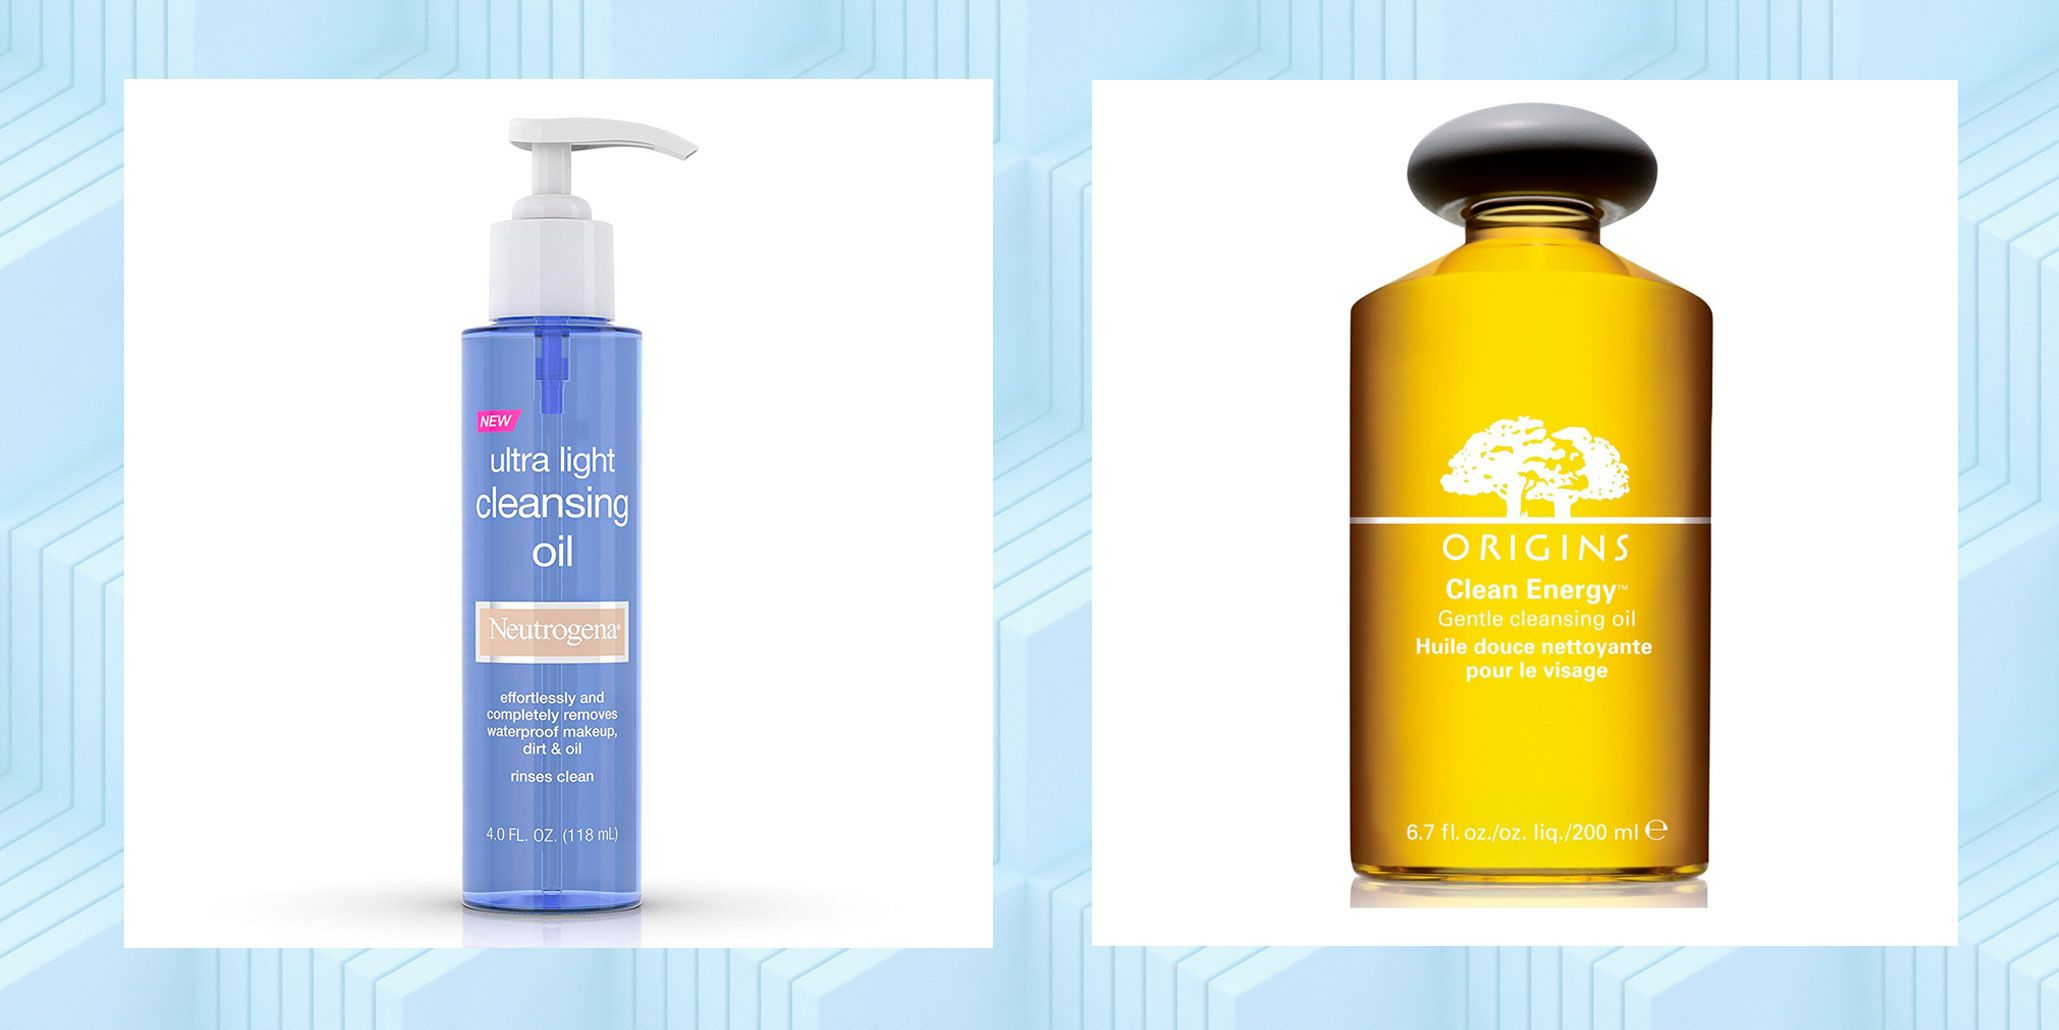 cleansing oil for acne prone skin